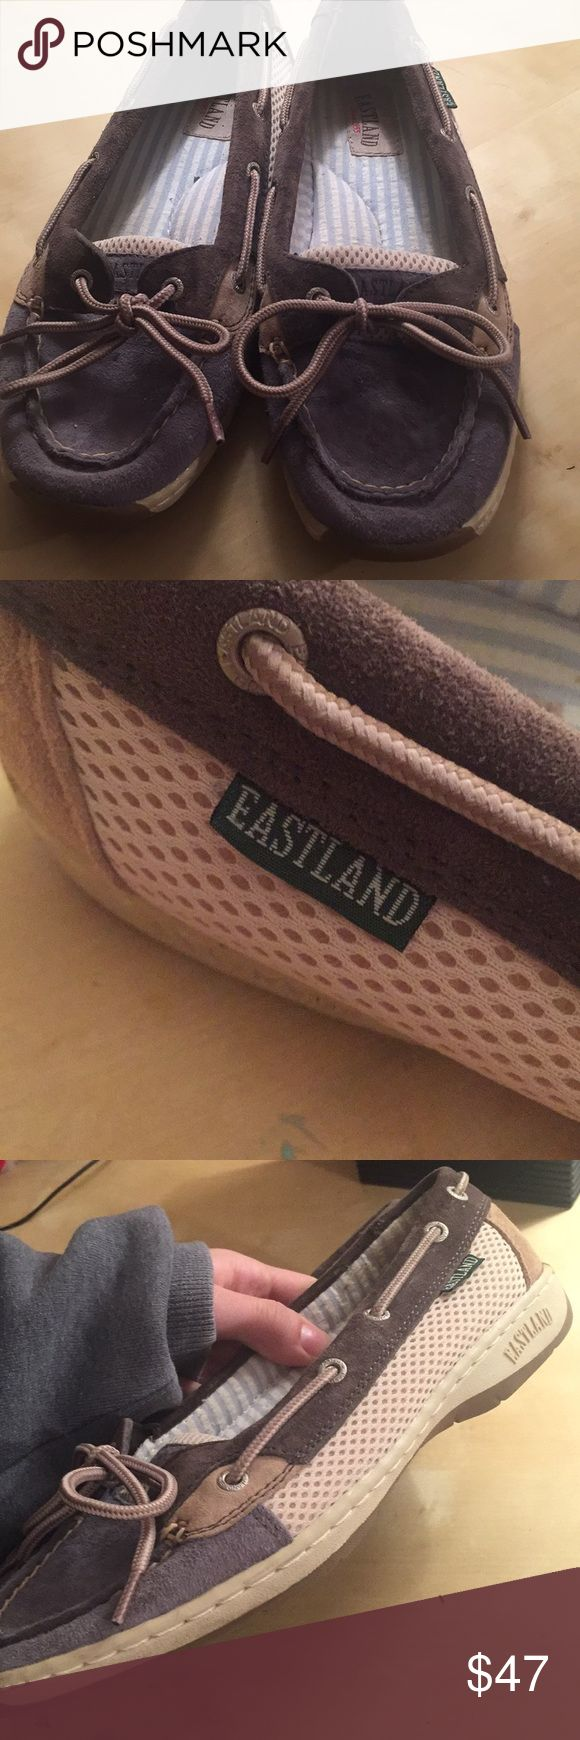 EASTLAND brand boat shoes buy 1 donate 1! Slightly used authentic EASTLAND BRAND boat shoes, original price ranging from $53-70+. Buy one pair and I will donate another pair!!! (Buying this pair will donate a pair of vans) Eastland Shoes Flats & Loafers